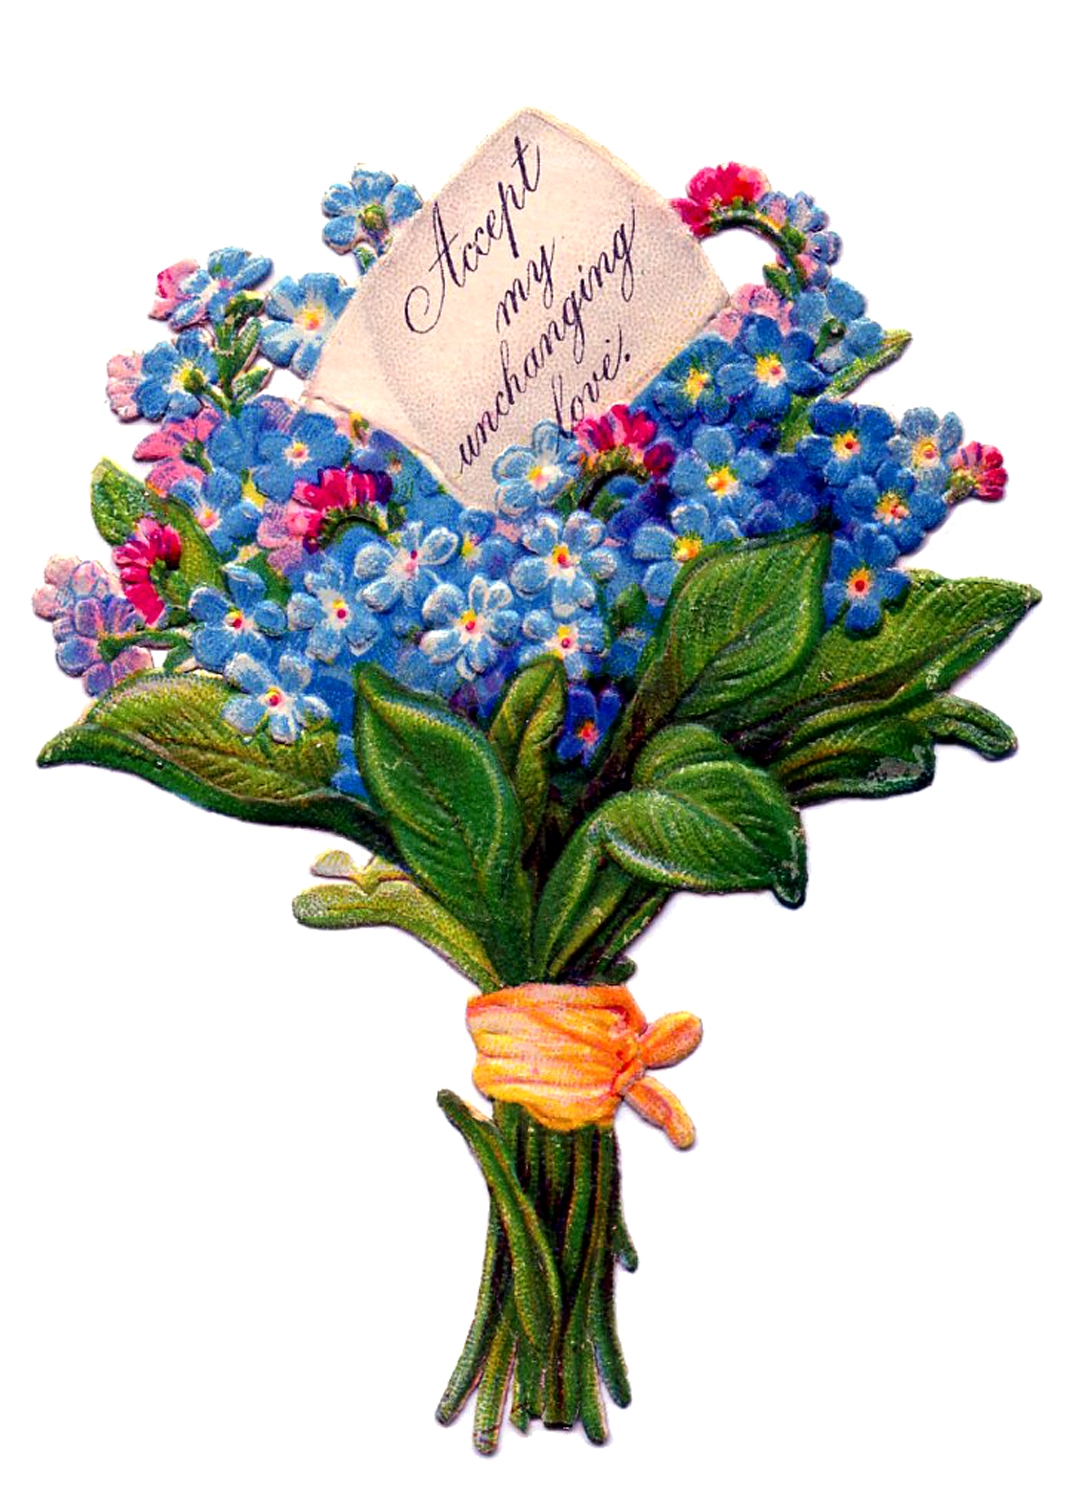 Bouquet clipart spring flower bouquet. Embed codes for your